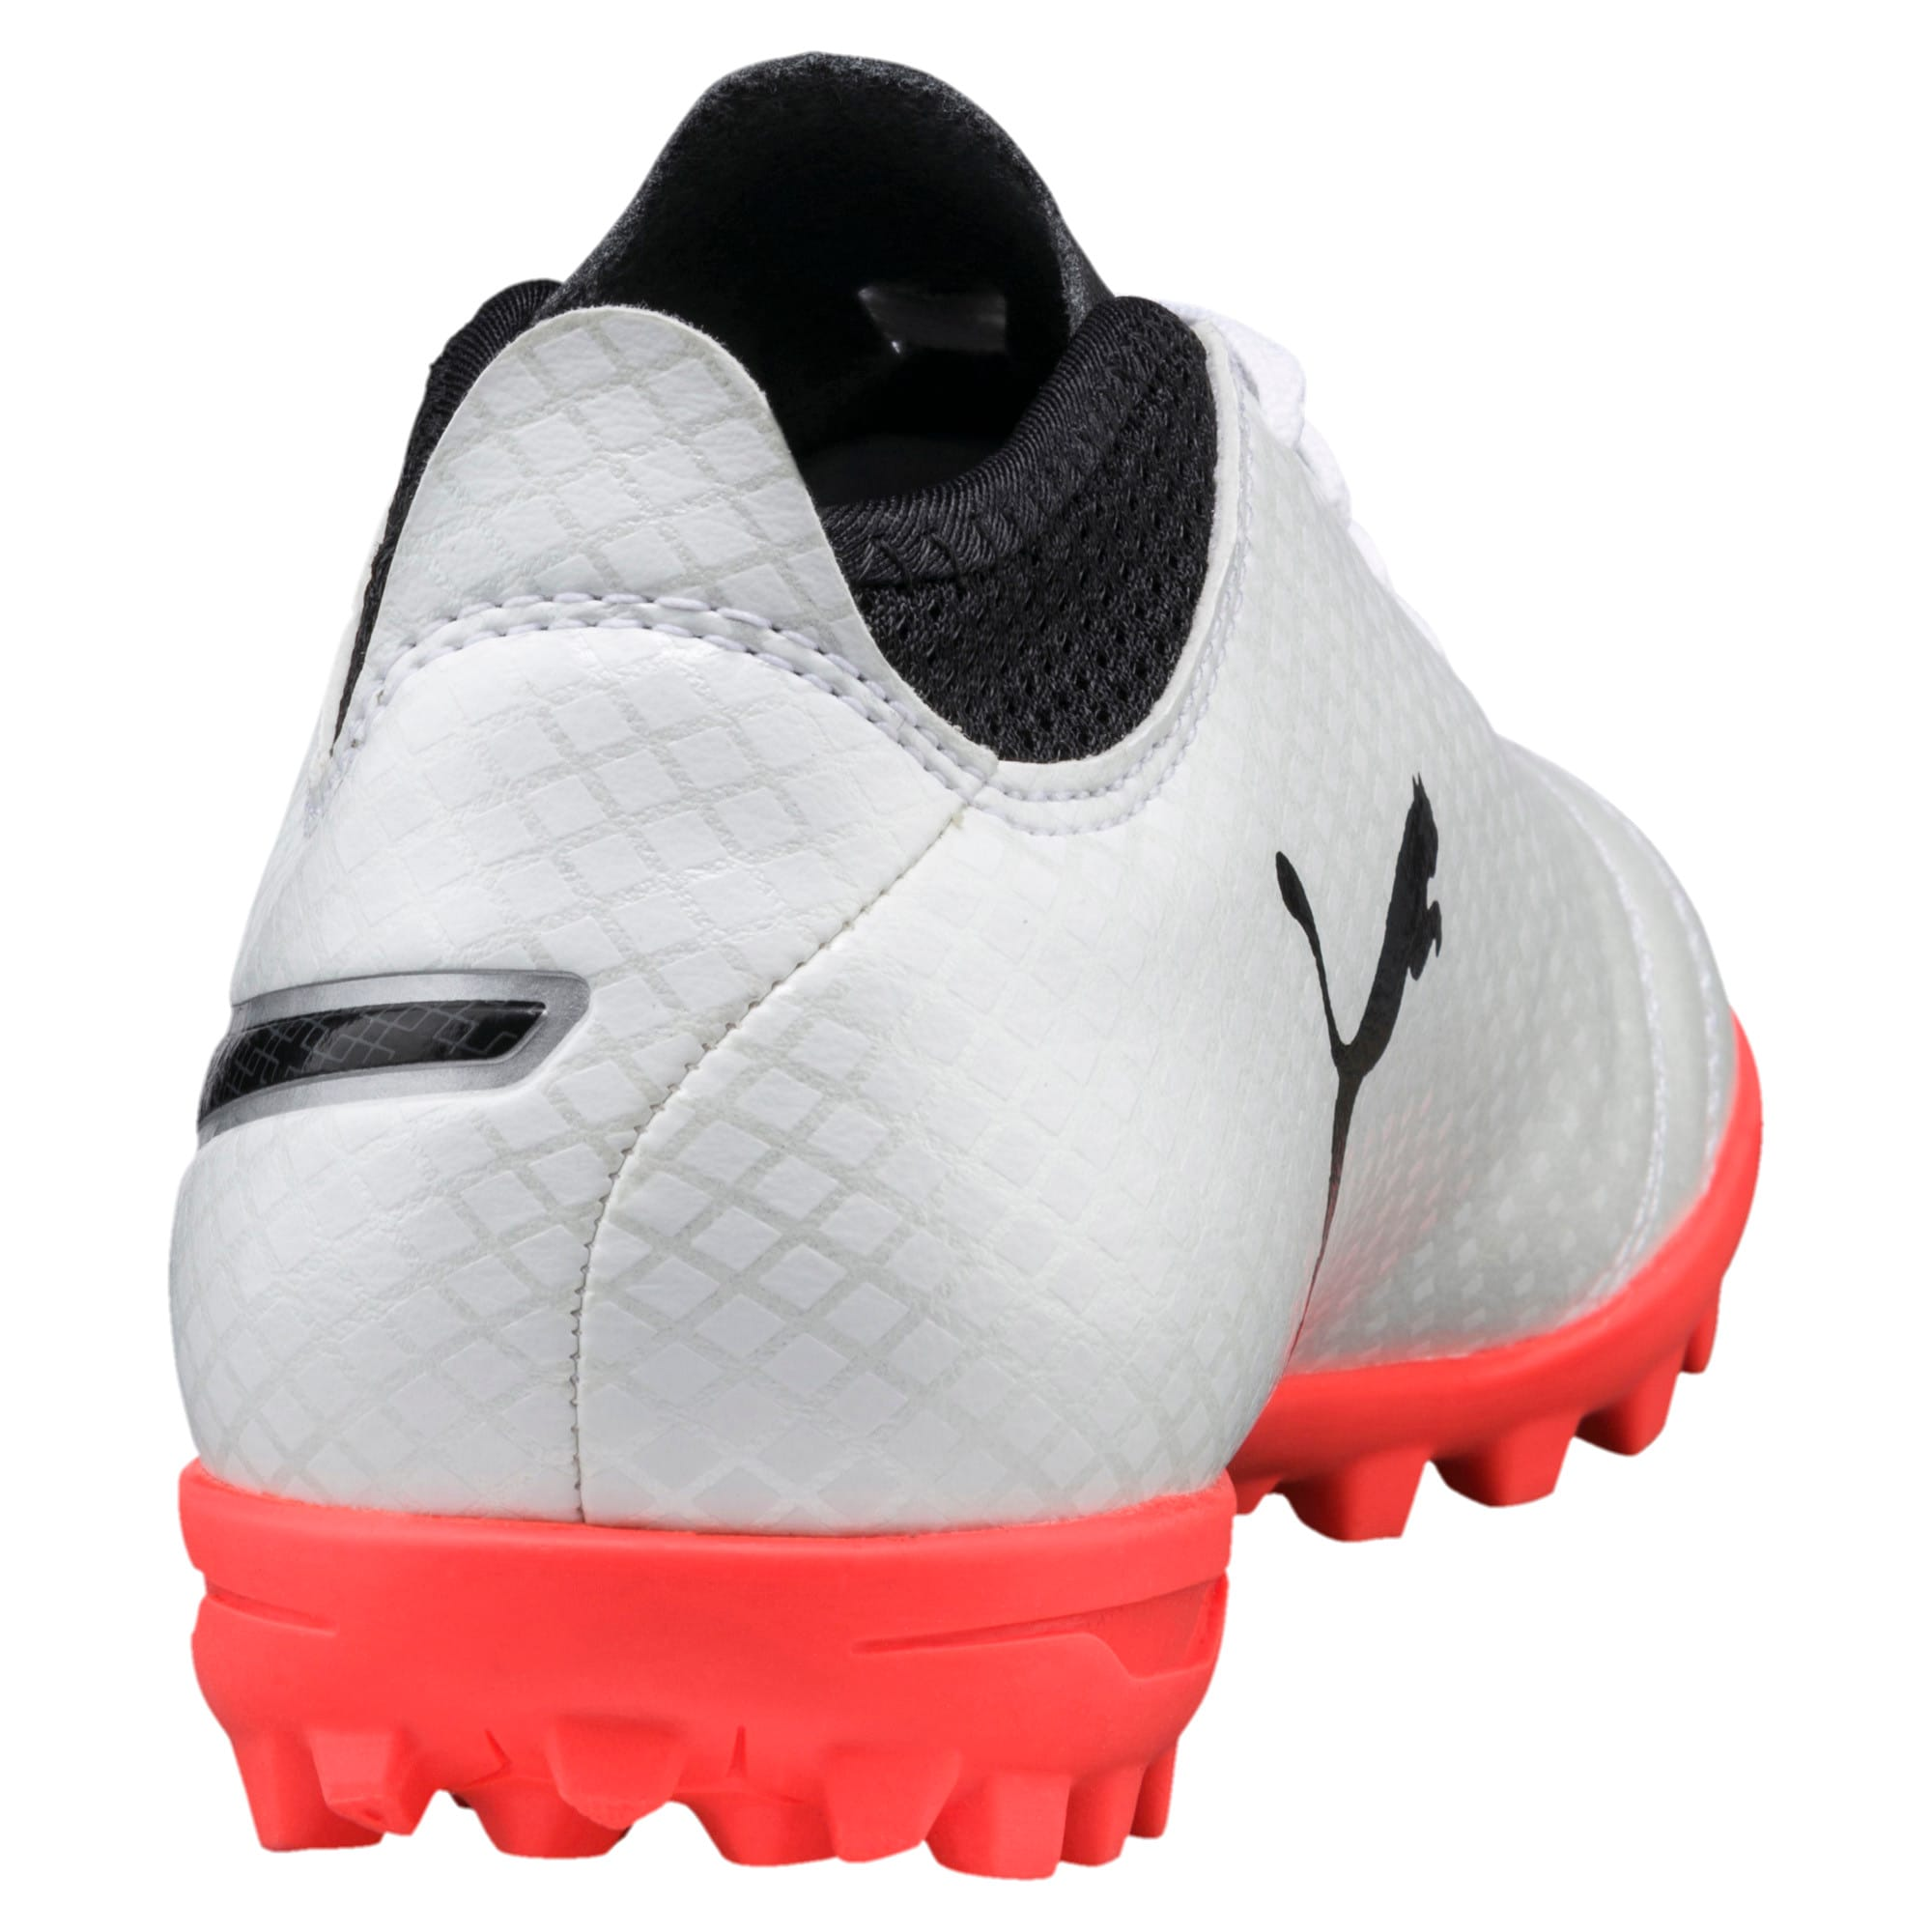 Thumbnail 3 of ONE 17.4 TT Kids' Football Boots, White-Black-Coral, medium-IND